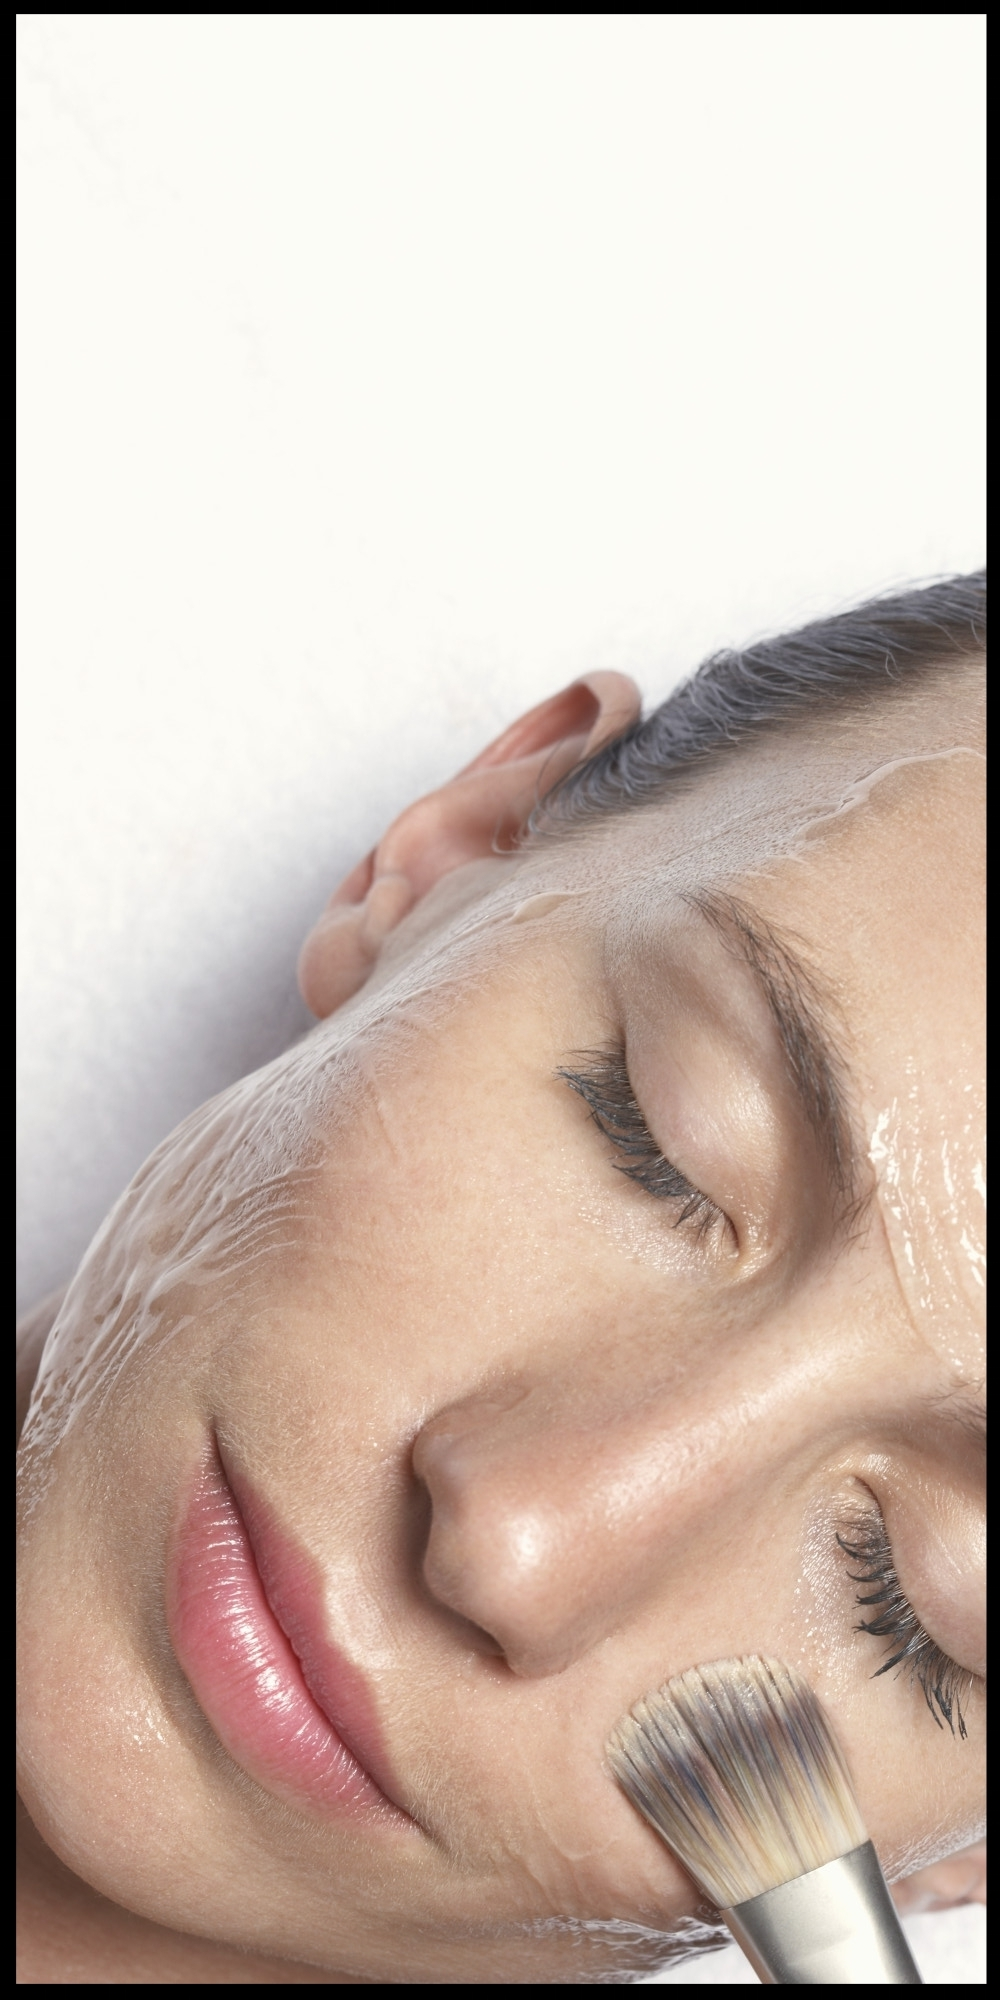 Resurfacing Treatments - Recommended for those with dull or uneven skin tone, acne or acne scarring, congested pores, wrinkles or loss of firmness; Image resurfacing treatments use natural and therapeutic acids to rejuvenate your skin.You, along with your Aesthetician, will choose between five different treatments specifically targeted for your skin type and skincare goals.Level I | $95 Level II | $115Organic Ormedic Lift:A blend of pumpkin, pineapple, papaya, and mango fruit enzymes and peptides in an organic aloe-vera gel base. This non-chemical peel re-balances, regenerates, and restores skin while comfrey plant derived stem cell technology recharge your skin's stem cells helping to maintain youthfulness of skin.Signature Lift:This results-driven treatment combines vitamin C & hydroxy acids to speed up cellular renewal. Perfect for redness prone skin, you will see noticeable results in just one session.Lightening Lift:Uneven complexions have met their match. This results-driven treatment combines the most innovative and effective botanical brighteners luminescence and seashine with echinacea plant-derived stem cells and anti-aging peptides immediately leaving the skin younger looking and luminous.Wrinkle Lift:This ultra-resurfacing blend of glycolic acid & retinol visibly reduces the appearance of fine lines and wrinkles leaving skin firm and revitalized. Buddleja stem cells reduce irritation and diminish photo-aging, botanical coffee, and peppermint energize, while eucalyptus and ylang ylang purify the skin.Acne Lift:A potent blend of alpha and beta hydroxy acids blended with lilac plant-derived stem cells to reduce blemishes, redness, and diminish post-breakout dark spots. Detoxifying ylang ylang and eucalyptus purify oily skin and effectively treat and heal acne blemishes.Perfection Lift: This distinct blend of exfoliating agents, 5% lactic acid, 5% salicylic acid, and 5% resorcinol work synergistically to visibly reduce the appearance of fine lines, correct u